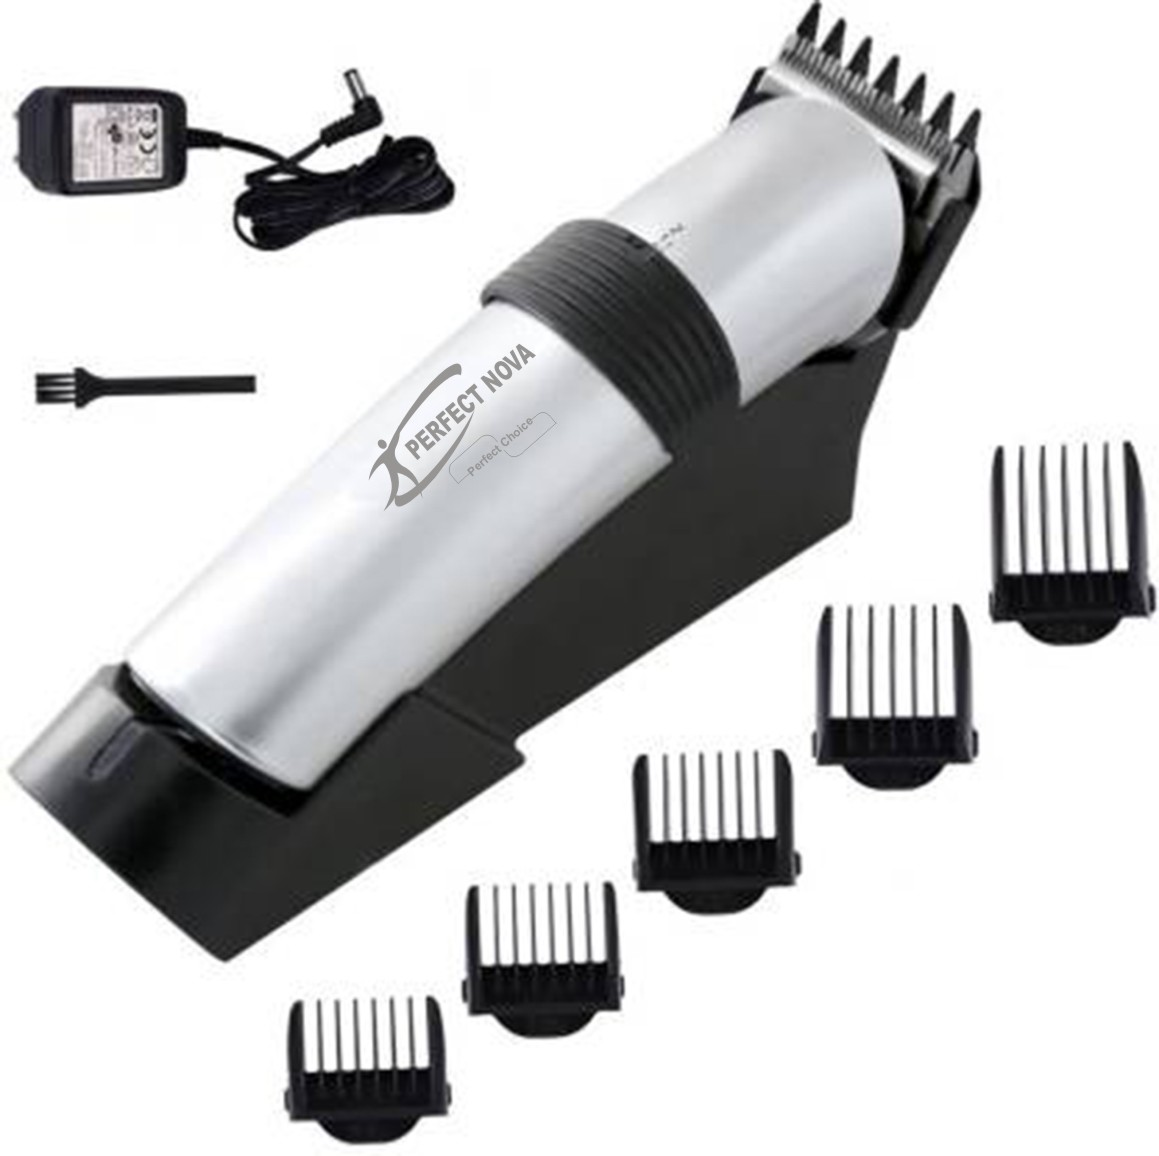 Perfect Nova (Device Of Man) PN-513 Runtime: 60 Min Trimmer For Men (Silver)